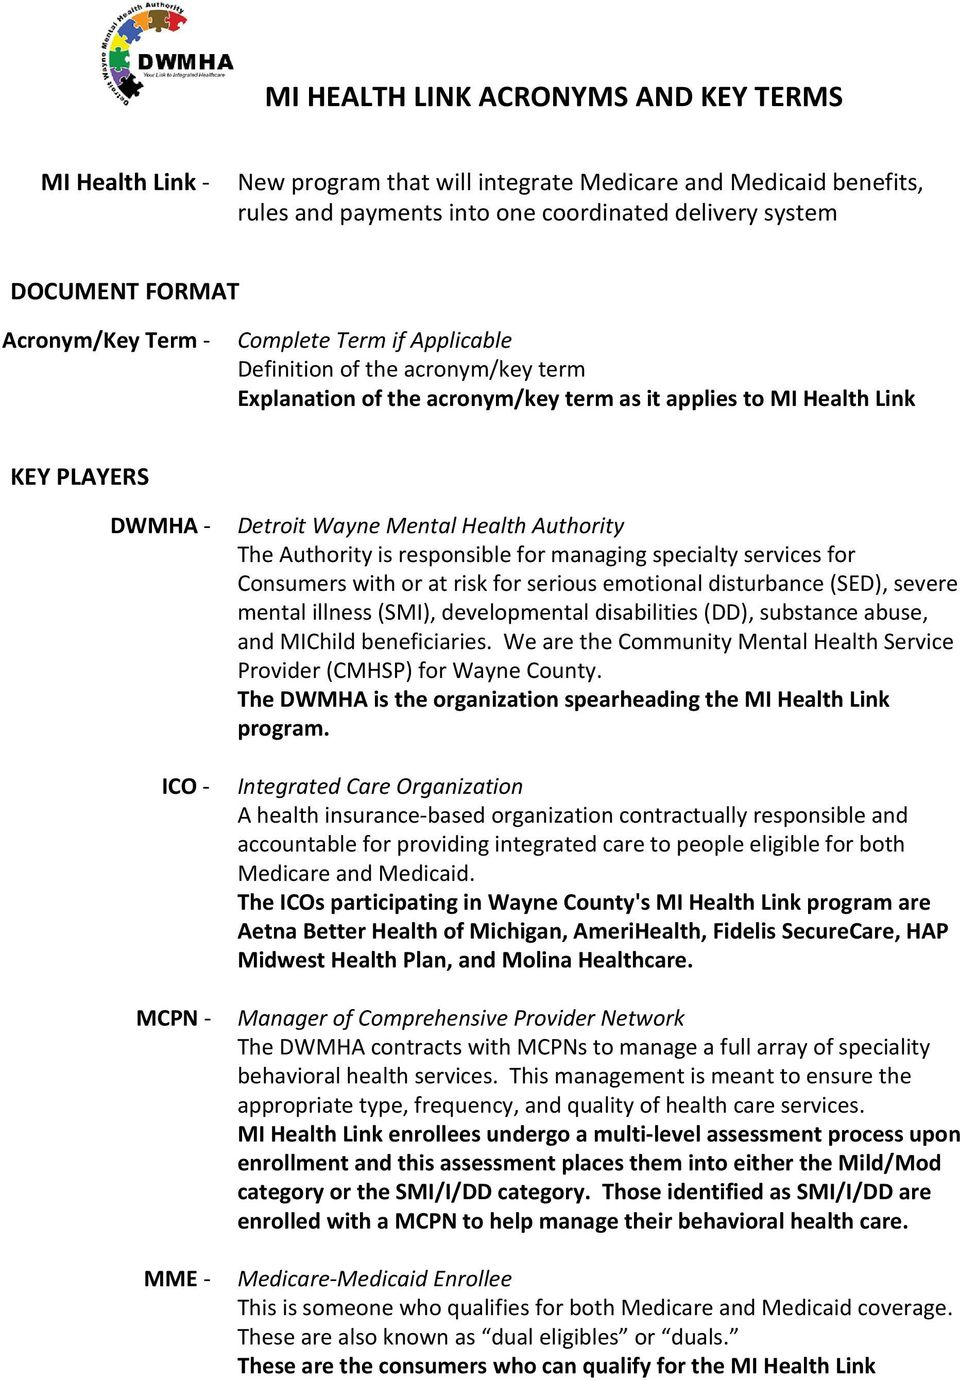 Mi Health Link Acronyms And Key Terms Pdf